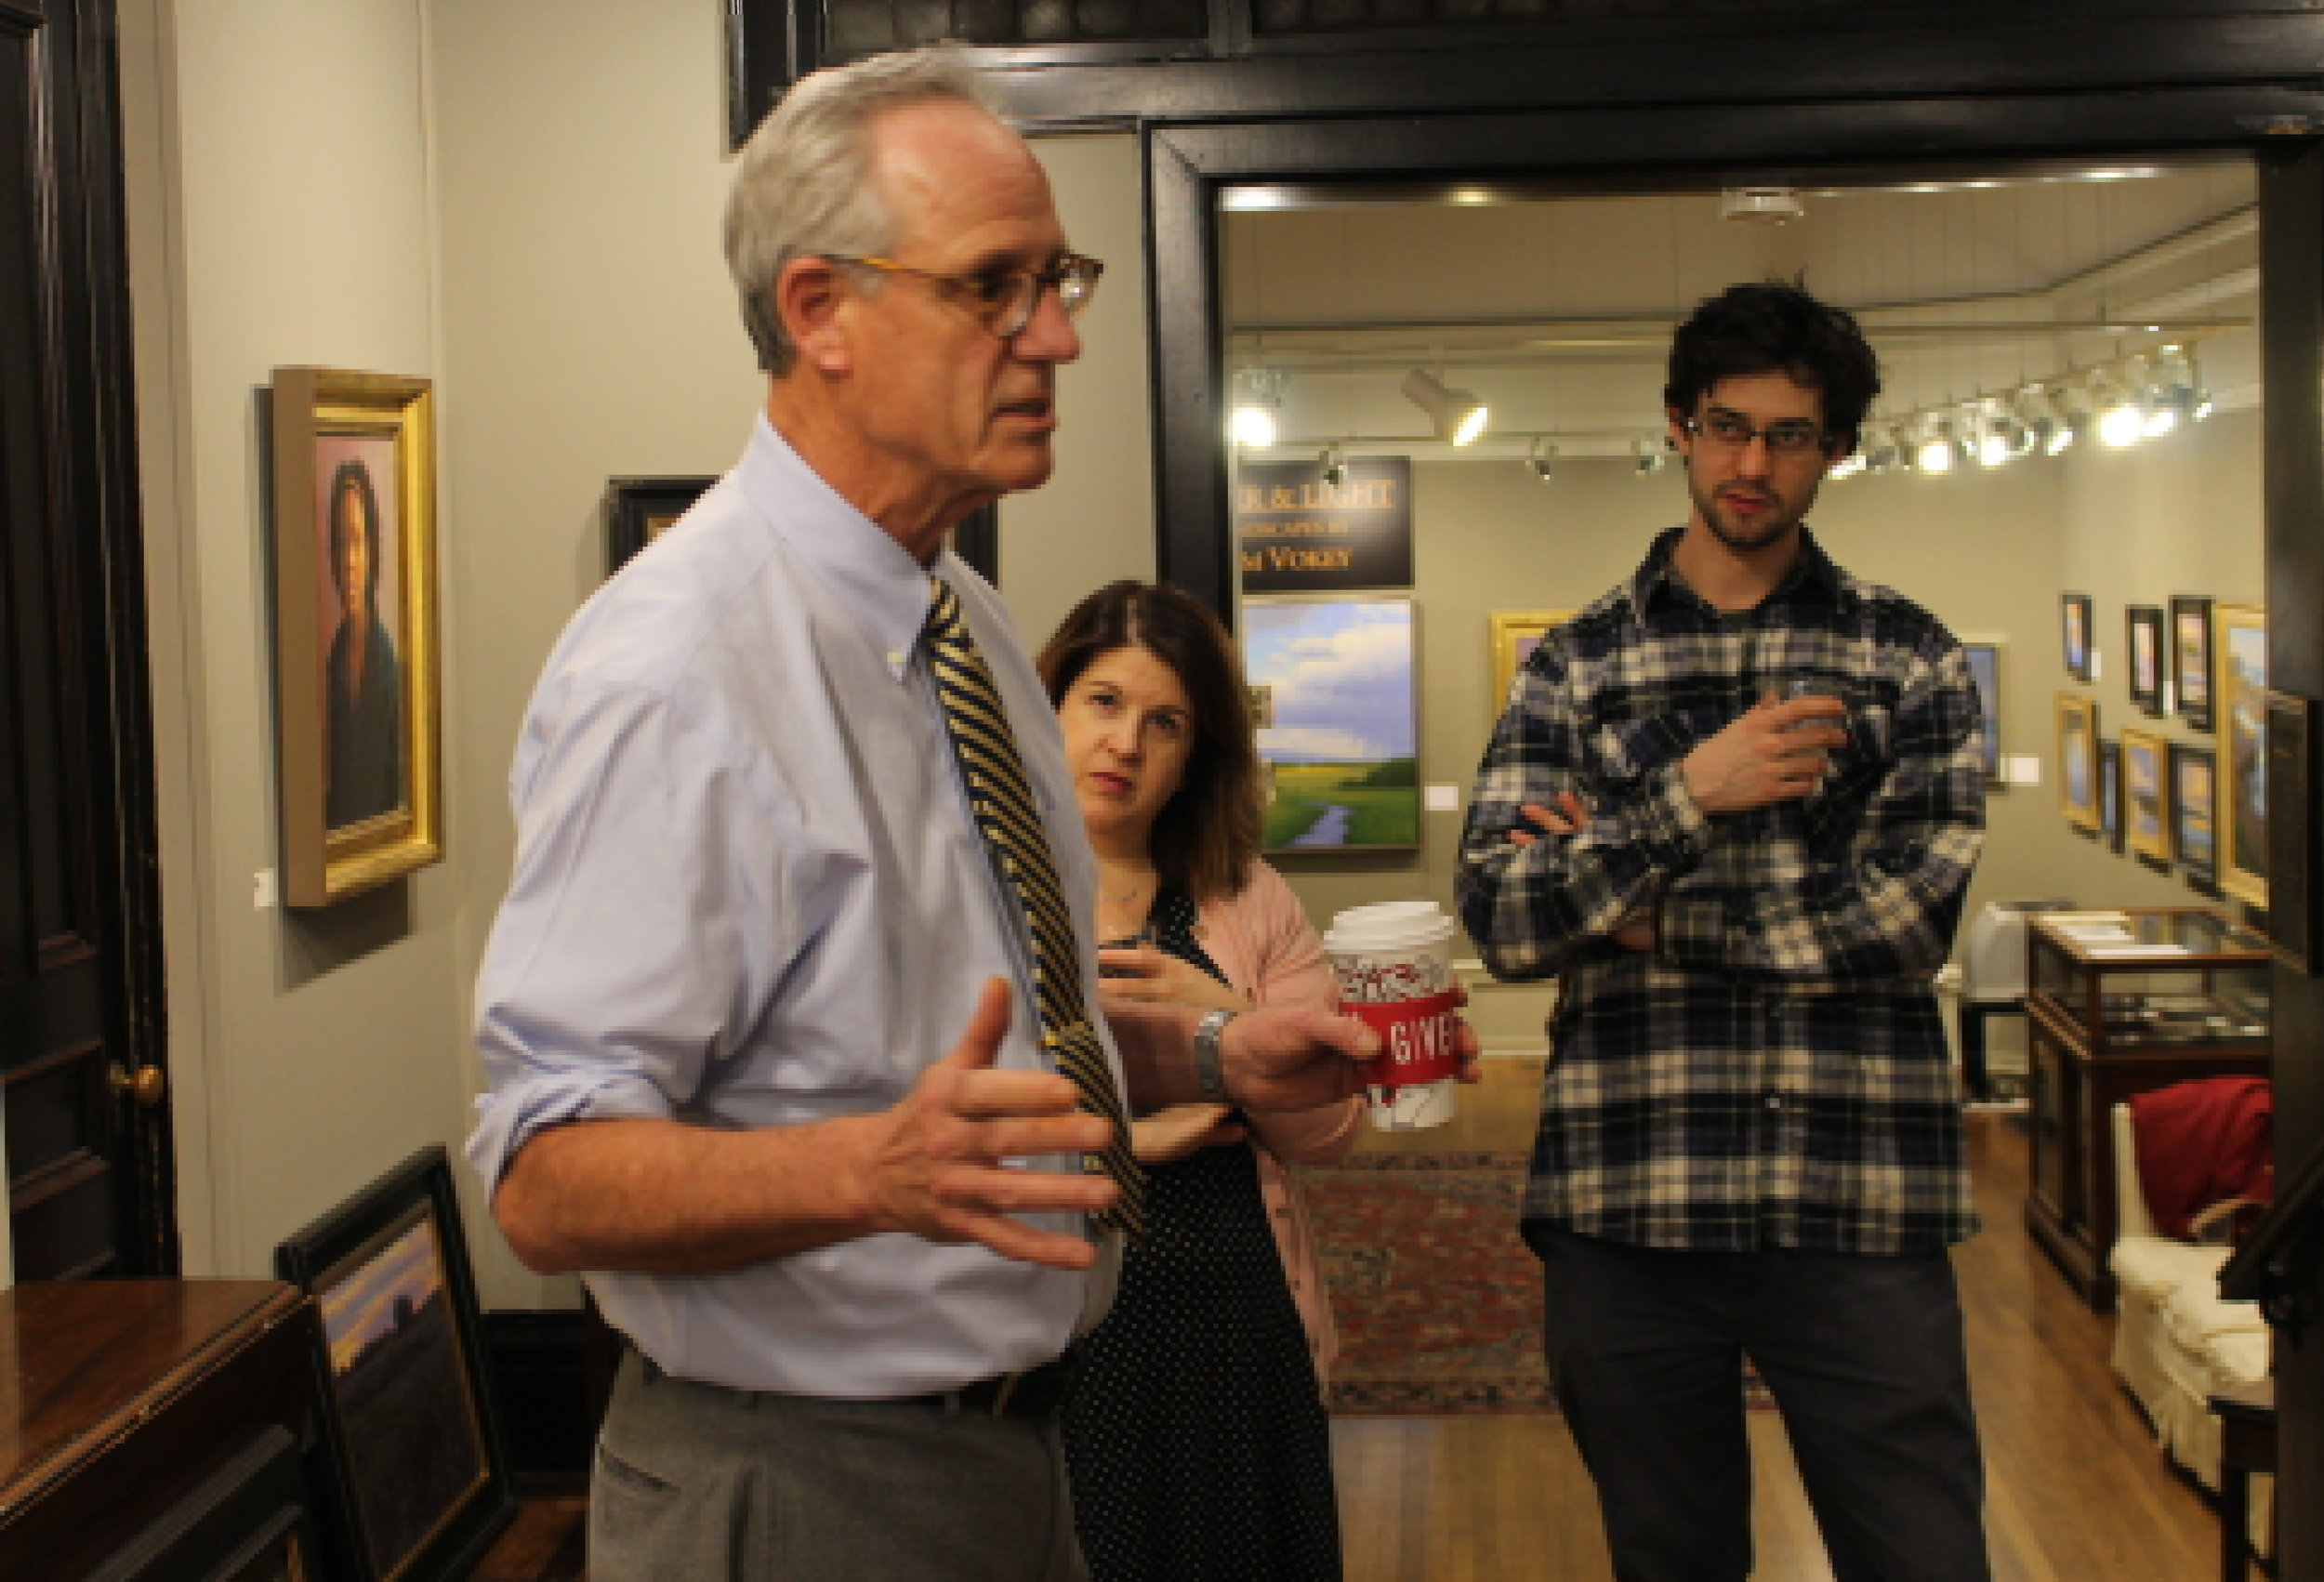 Stapleton Kearns during an Artist Talk at the Guild of Boston Artists